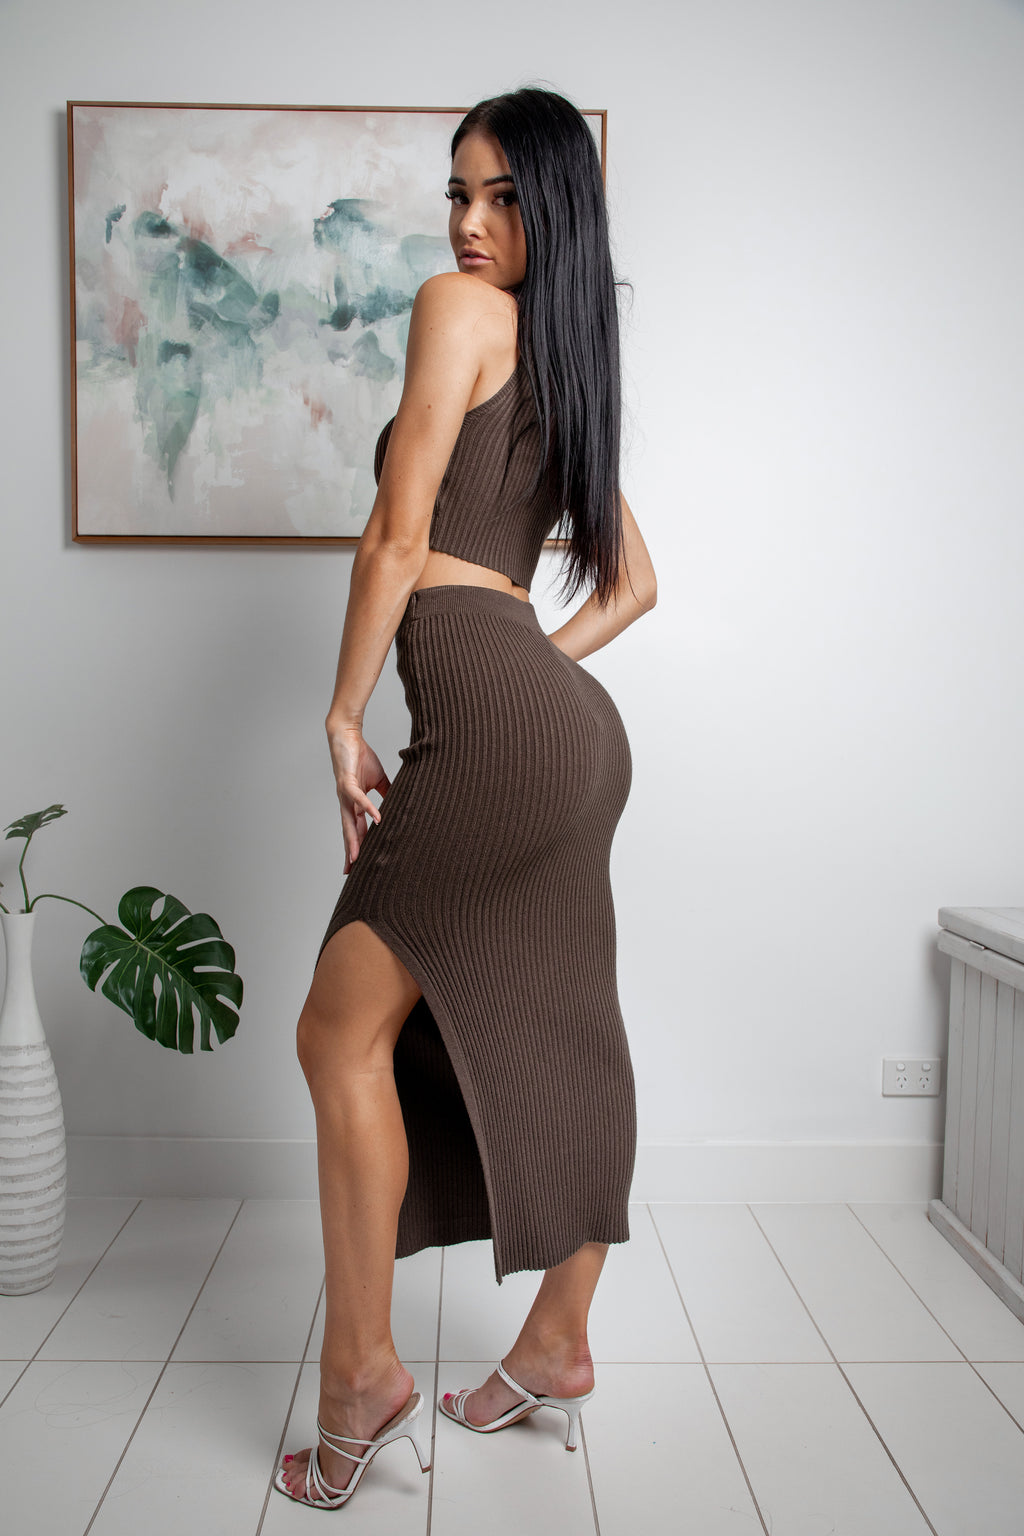 OPHELIA SLEEVELESS KNIT CROP TOP - Chocolate